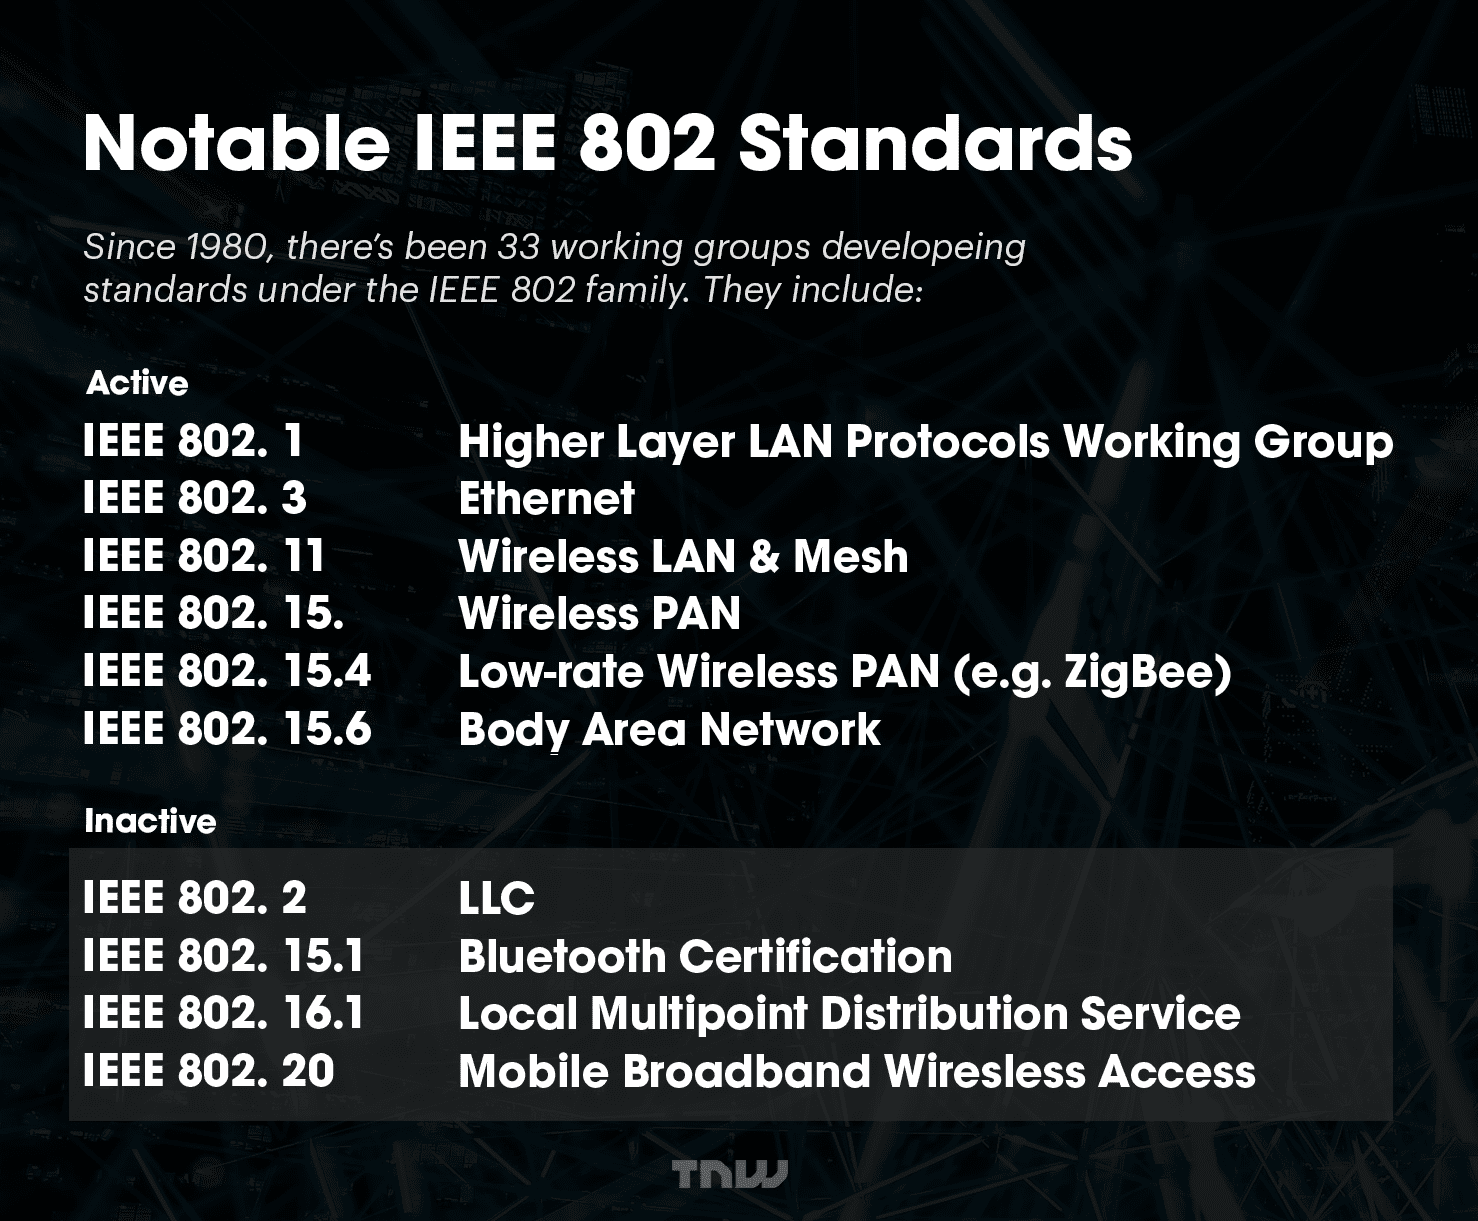 Notable active and inactive IEEE standards